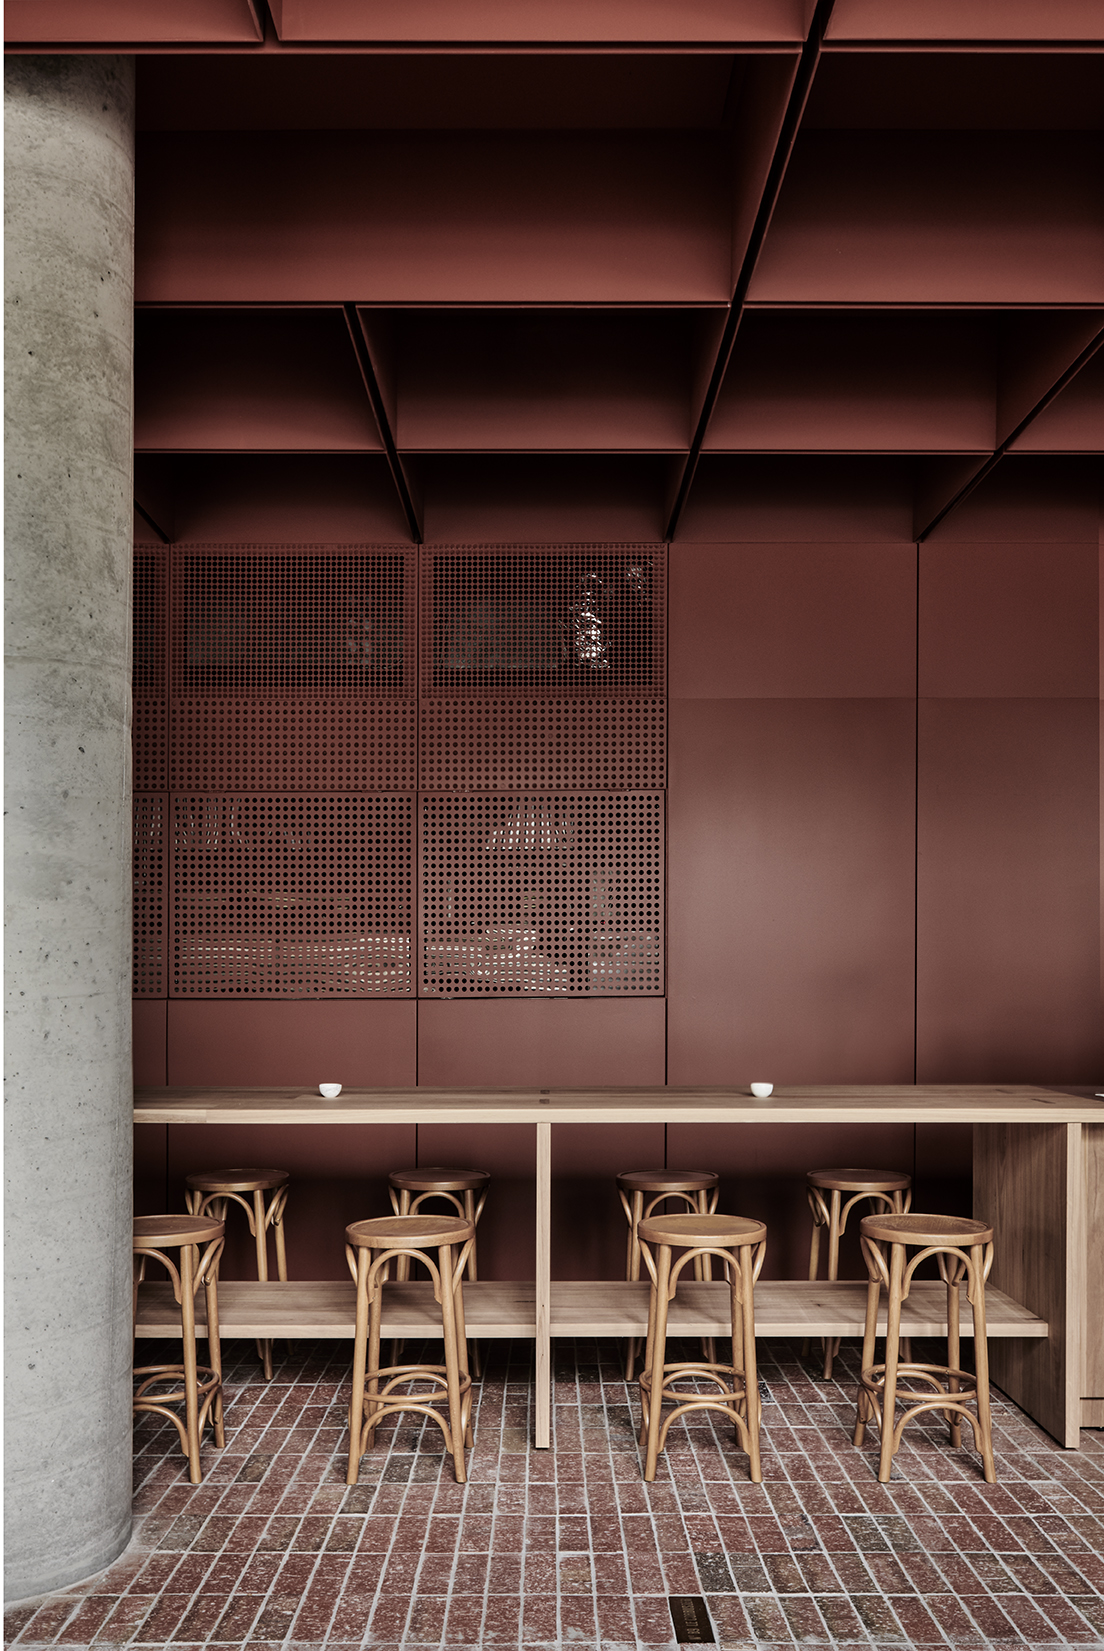 The Bentwood café draws on traditional materials, like brick and timber, to create an interior with a sophistication found in its details,raw textures and earthy tones. Photo Tom Blachford.